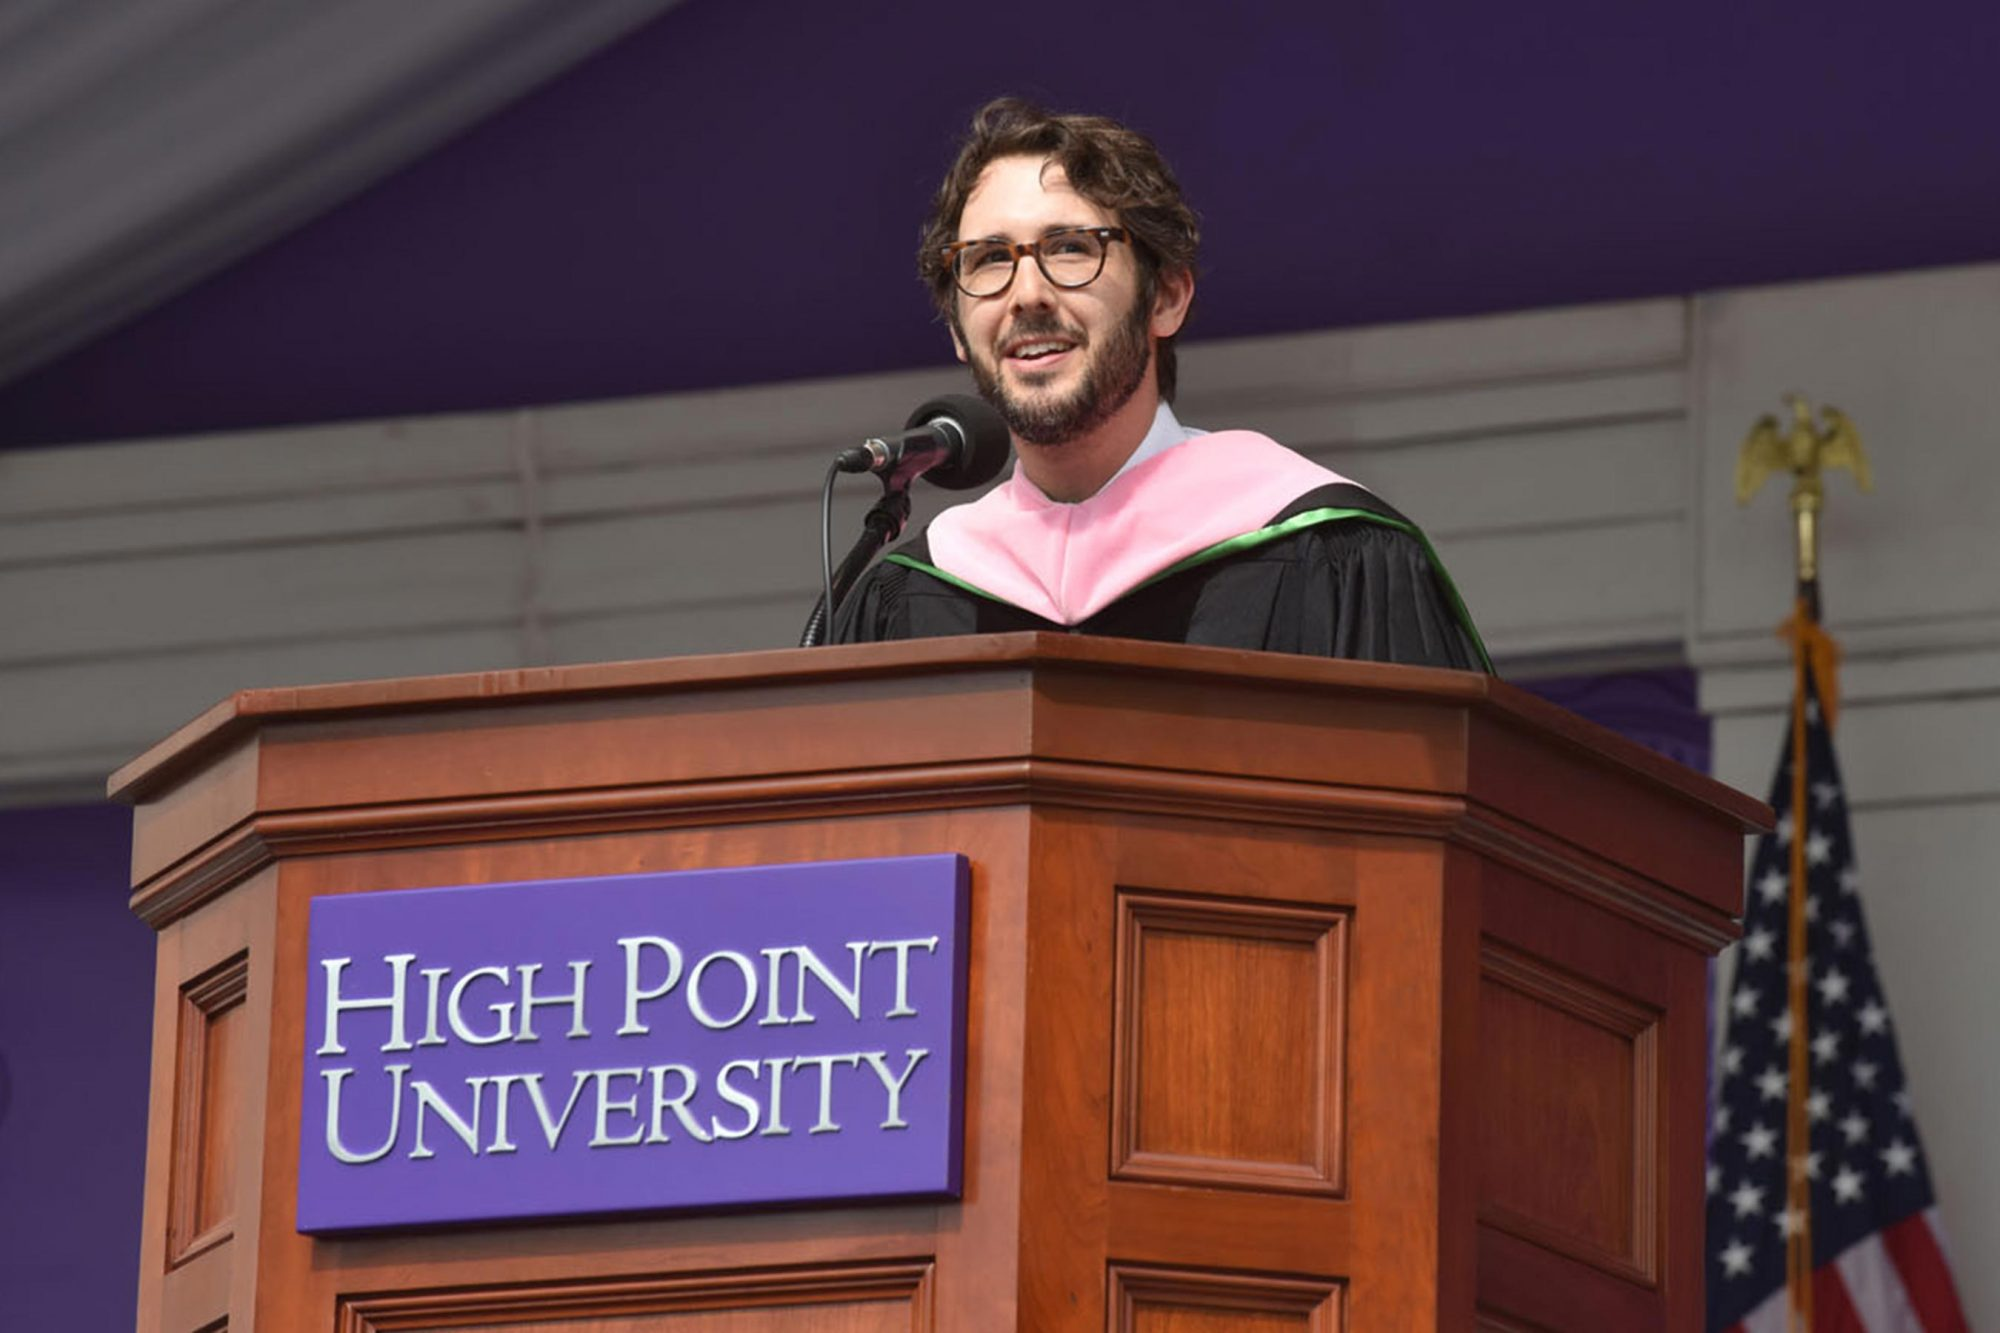 HPU-Commencement-2018-1